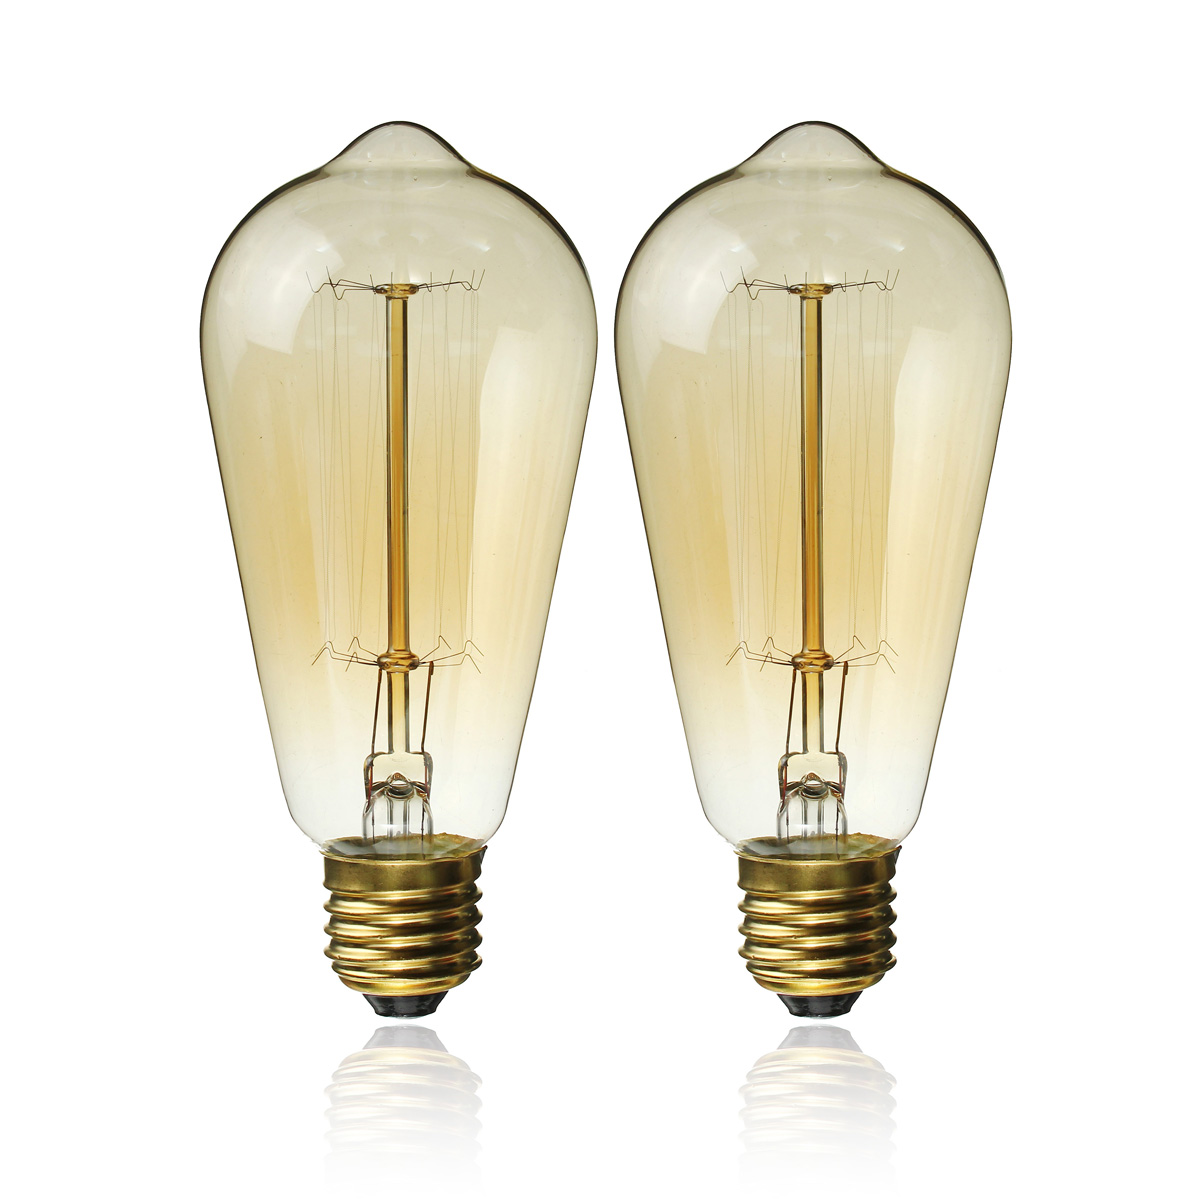 Industrial Looking Light Bulbs E27 60w Retro Vintage Industrial Style Filament Light Bulb